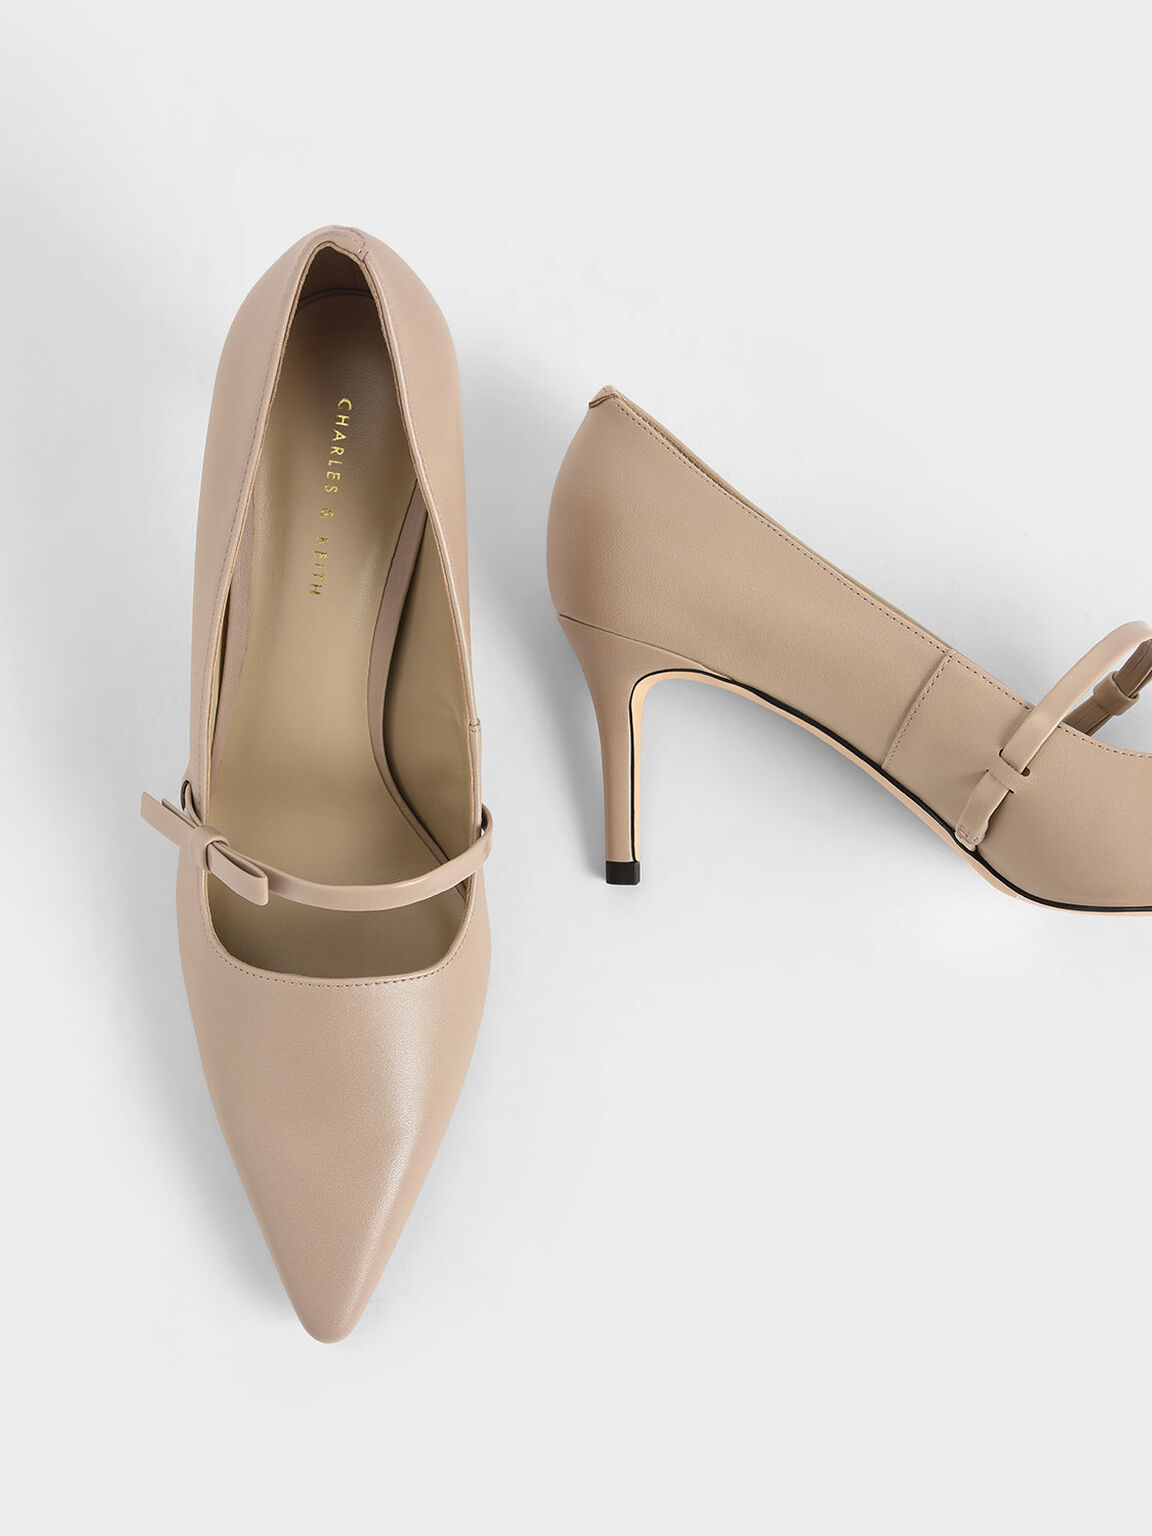 Mary Jane Stiletto Heel Court Shoes, Beige, hi-res